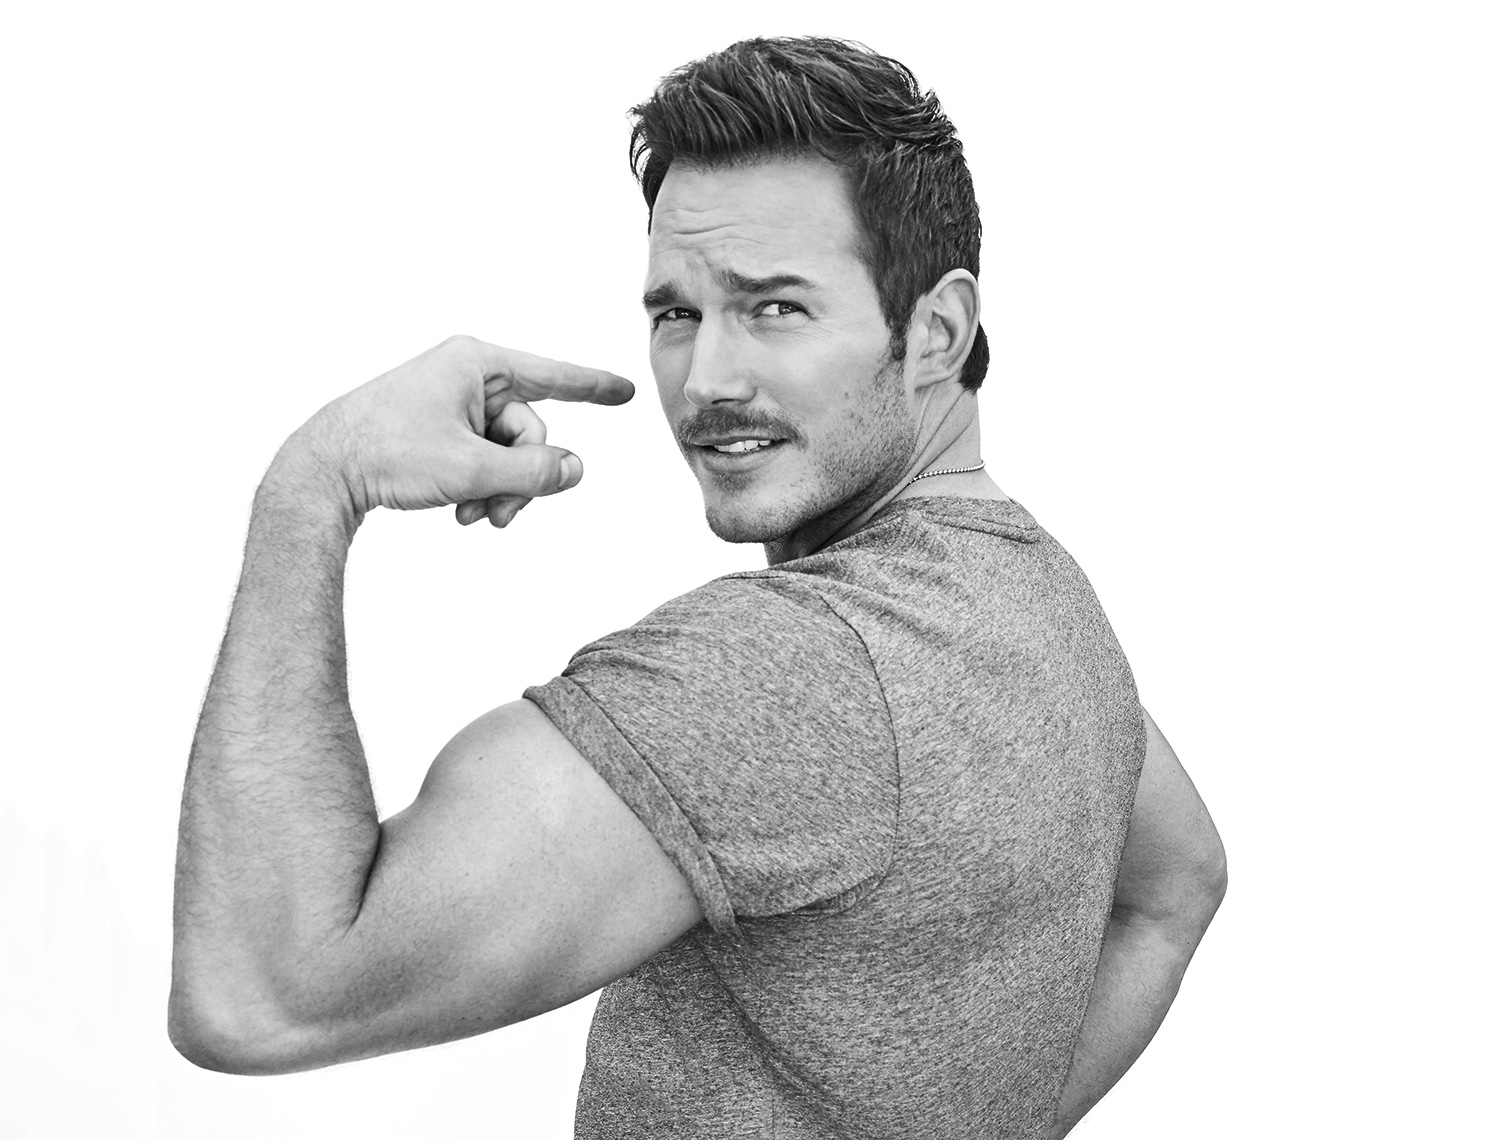 chris_pratt_mensfitness_0150-2